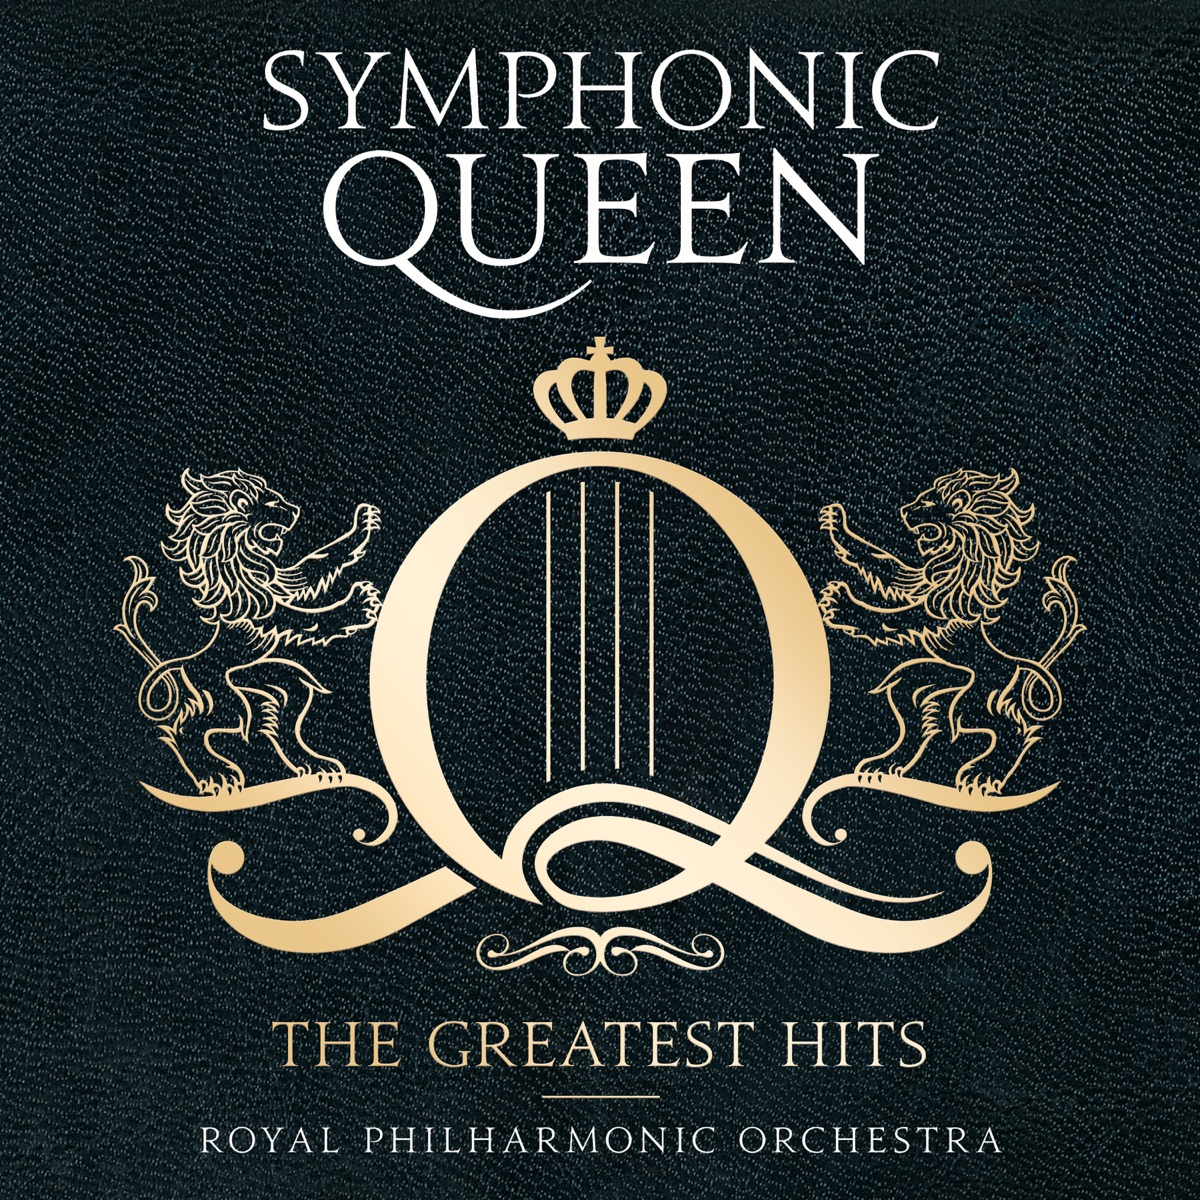 Symphonic Queen - The Greatest Hits Album Cover by Matthew